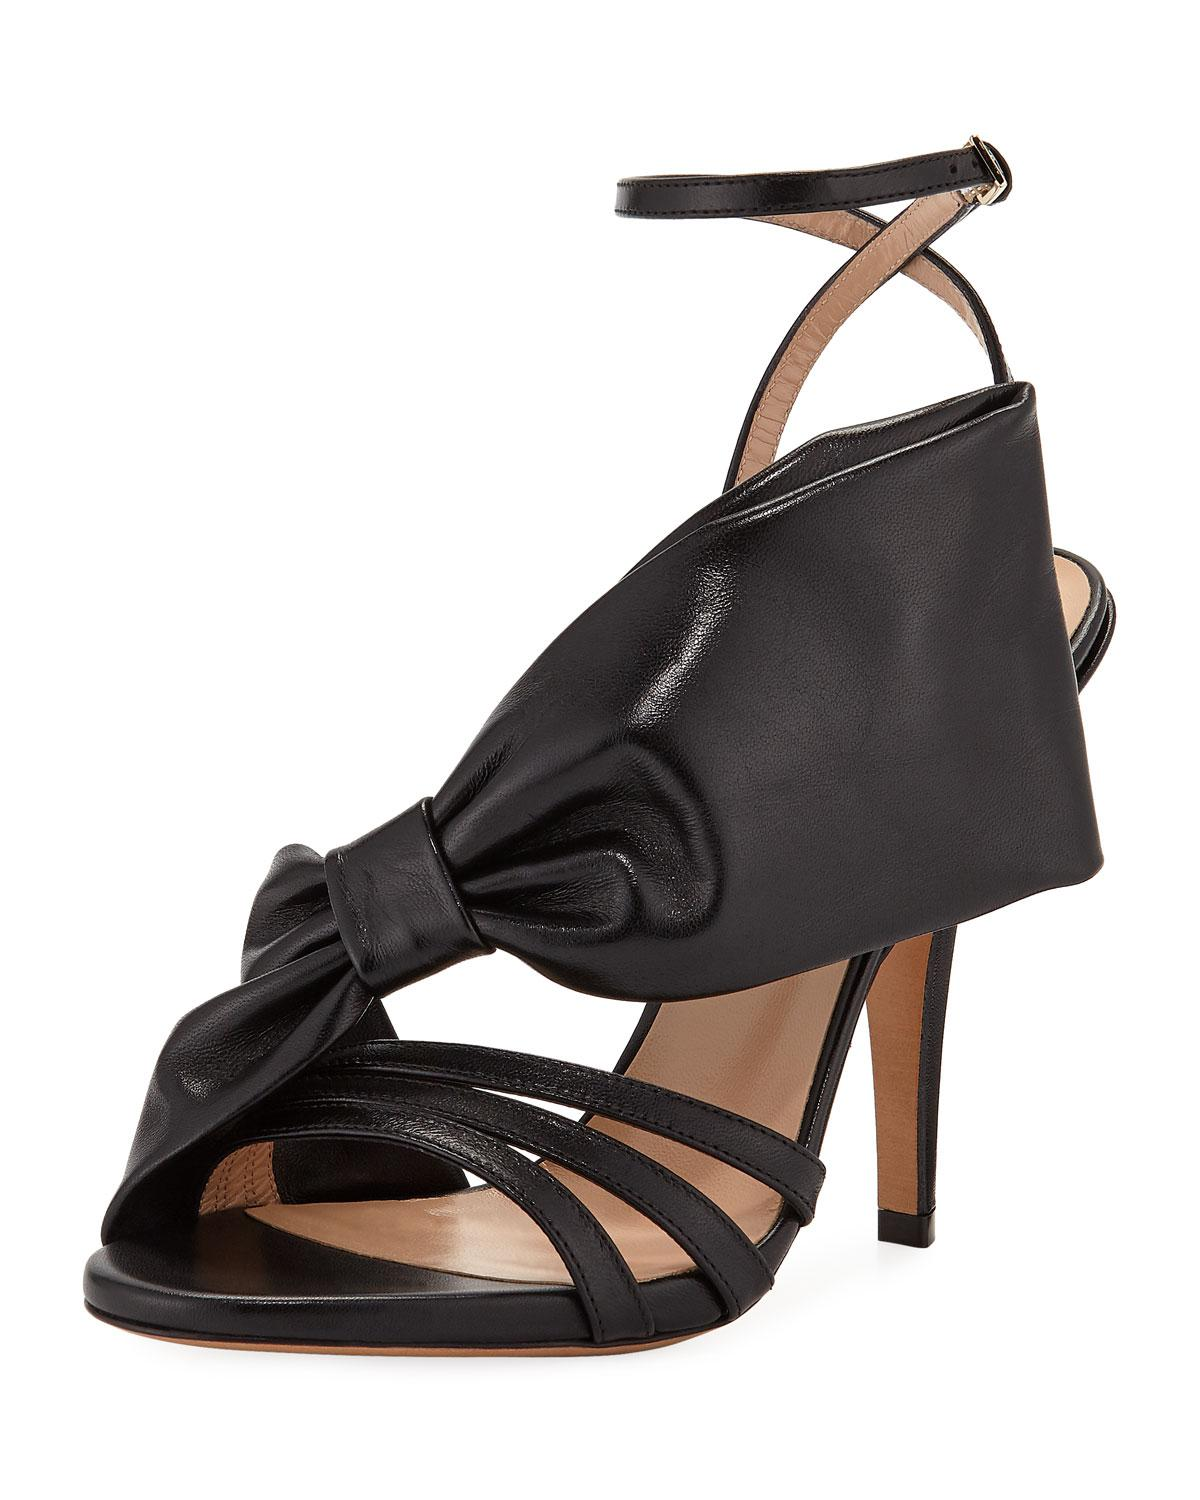 318b6823ba7 Lyst - Valentino Large Bow Leather Sandal in Black